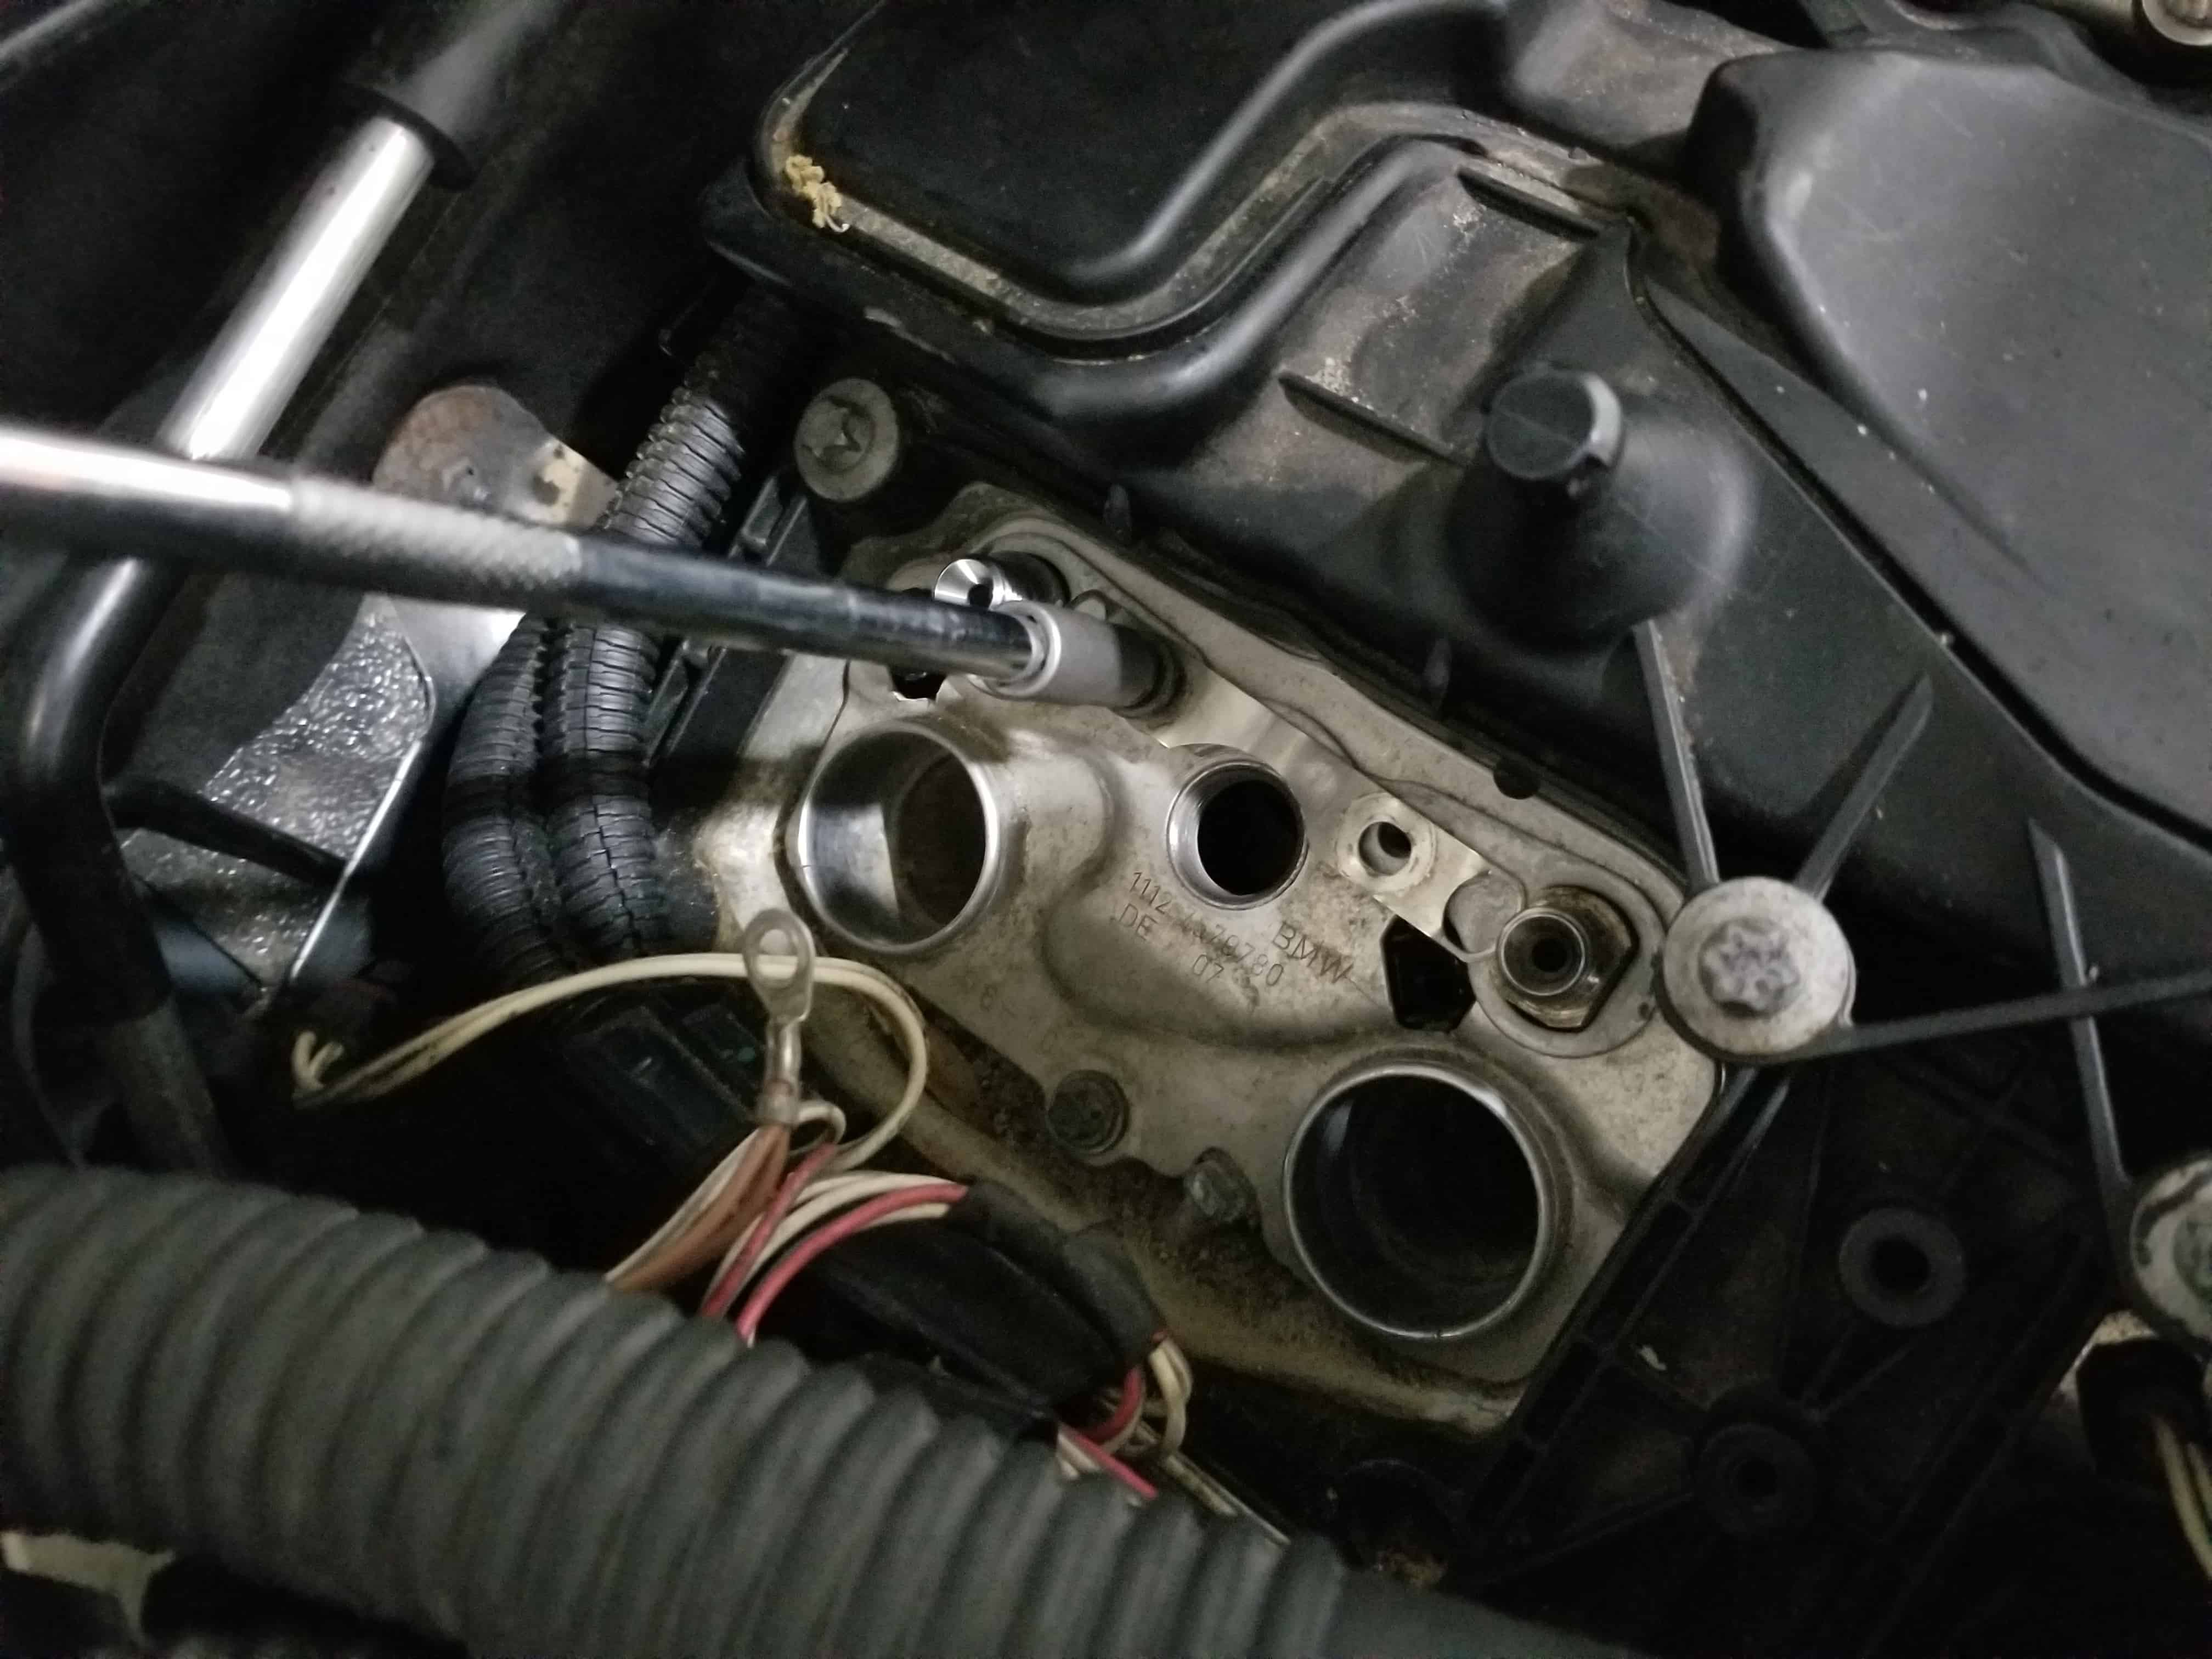 BMW N55 Fuel Injector Replacement - 6 Cyl  Turbo 1,3,5,7,X3